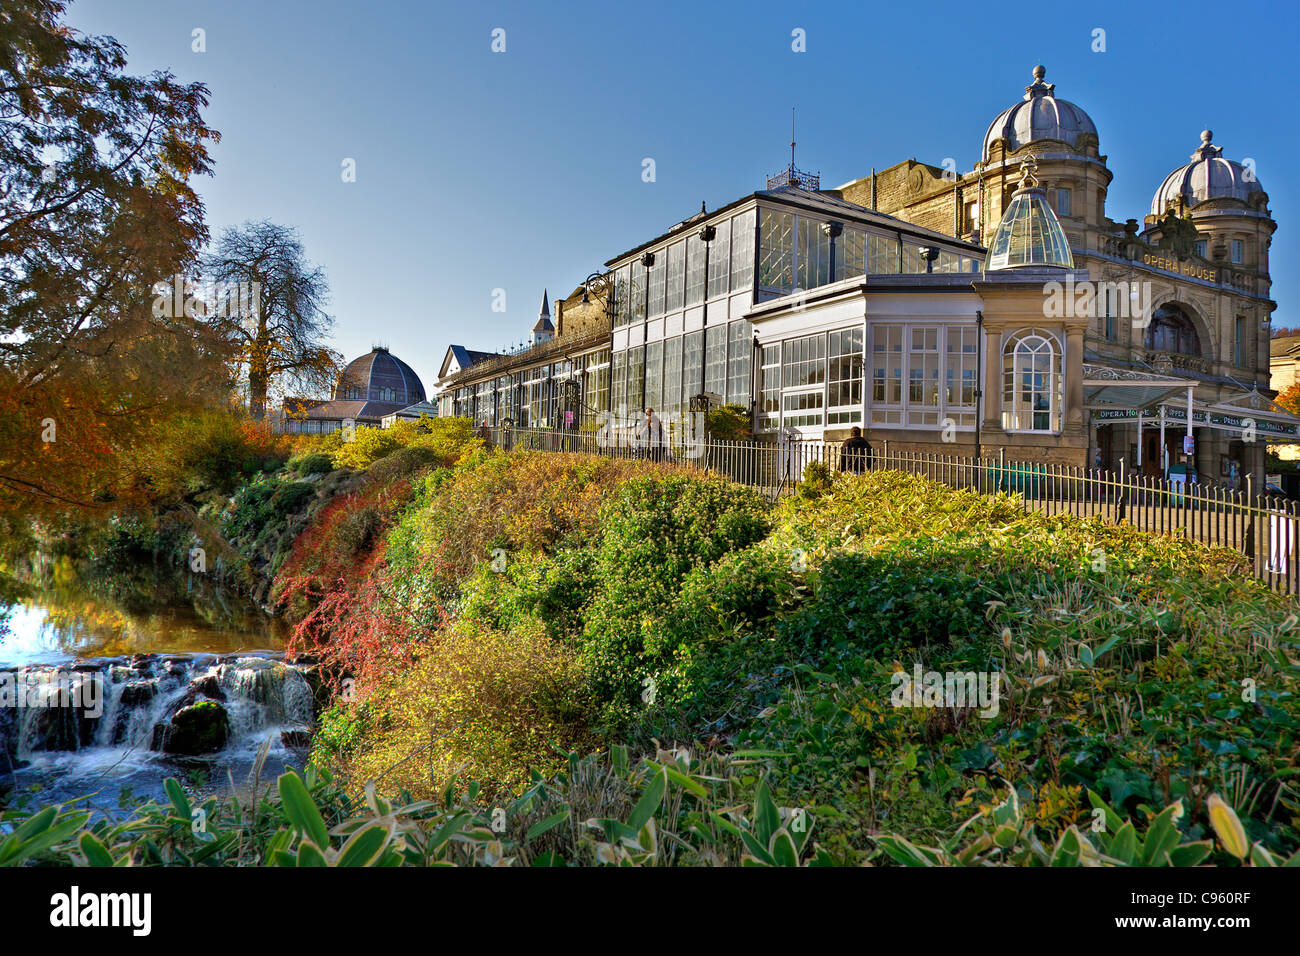 Buxton Opera House and theatre. - Stock Image